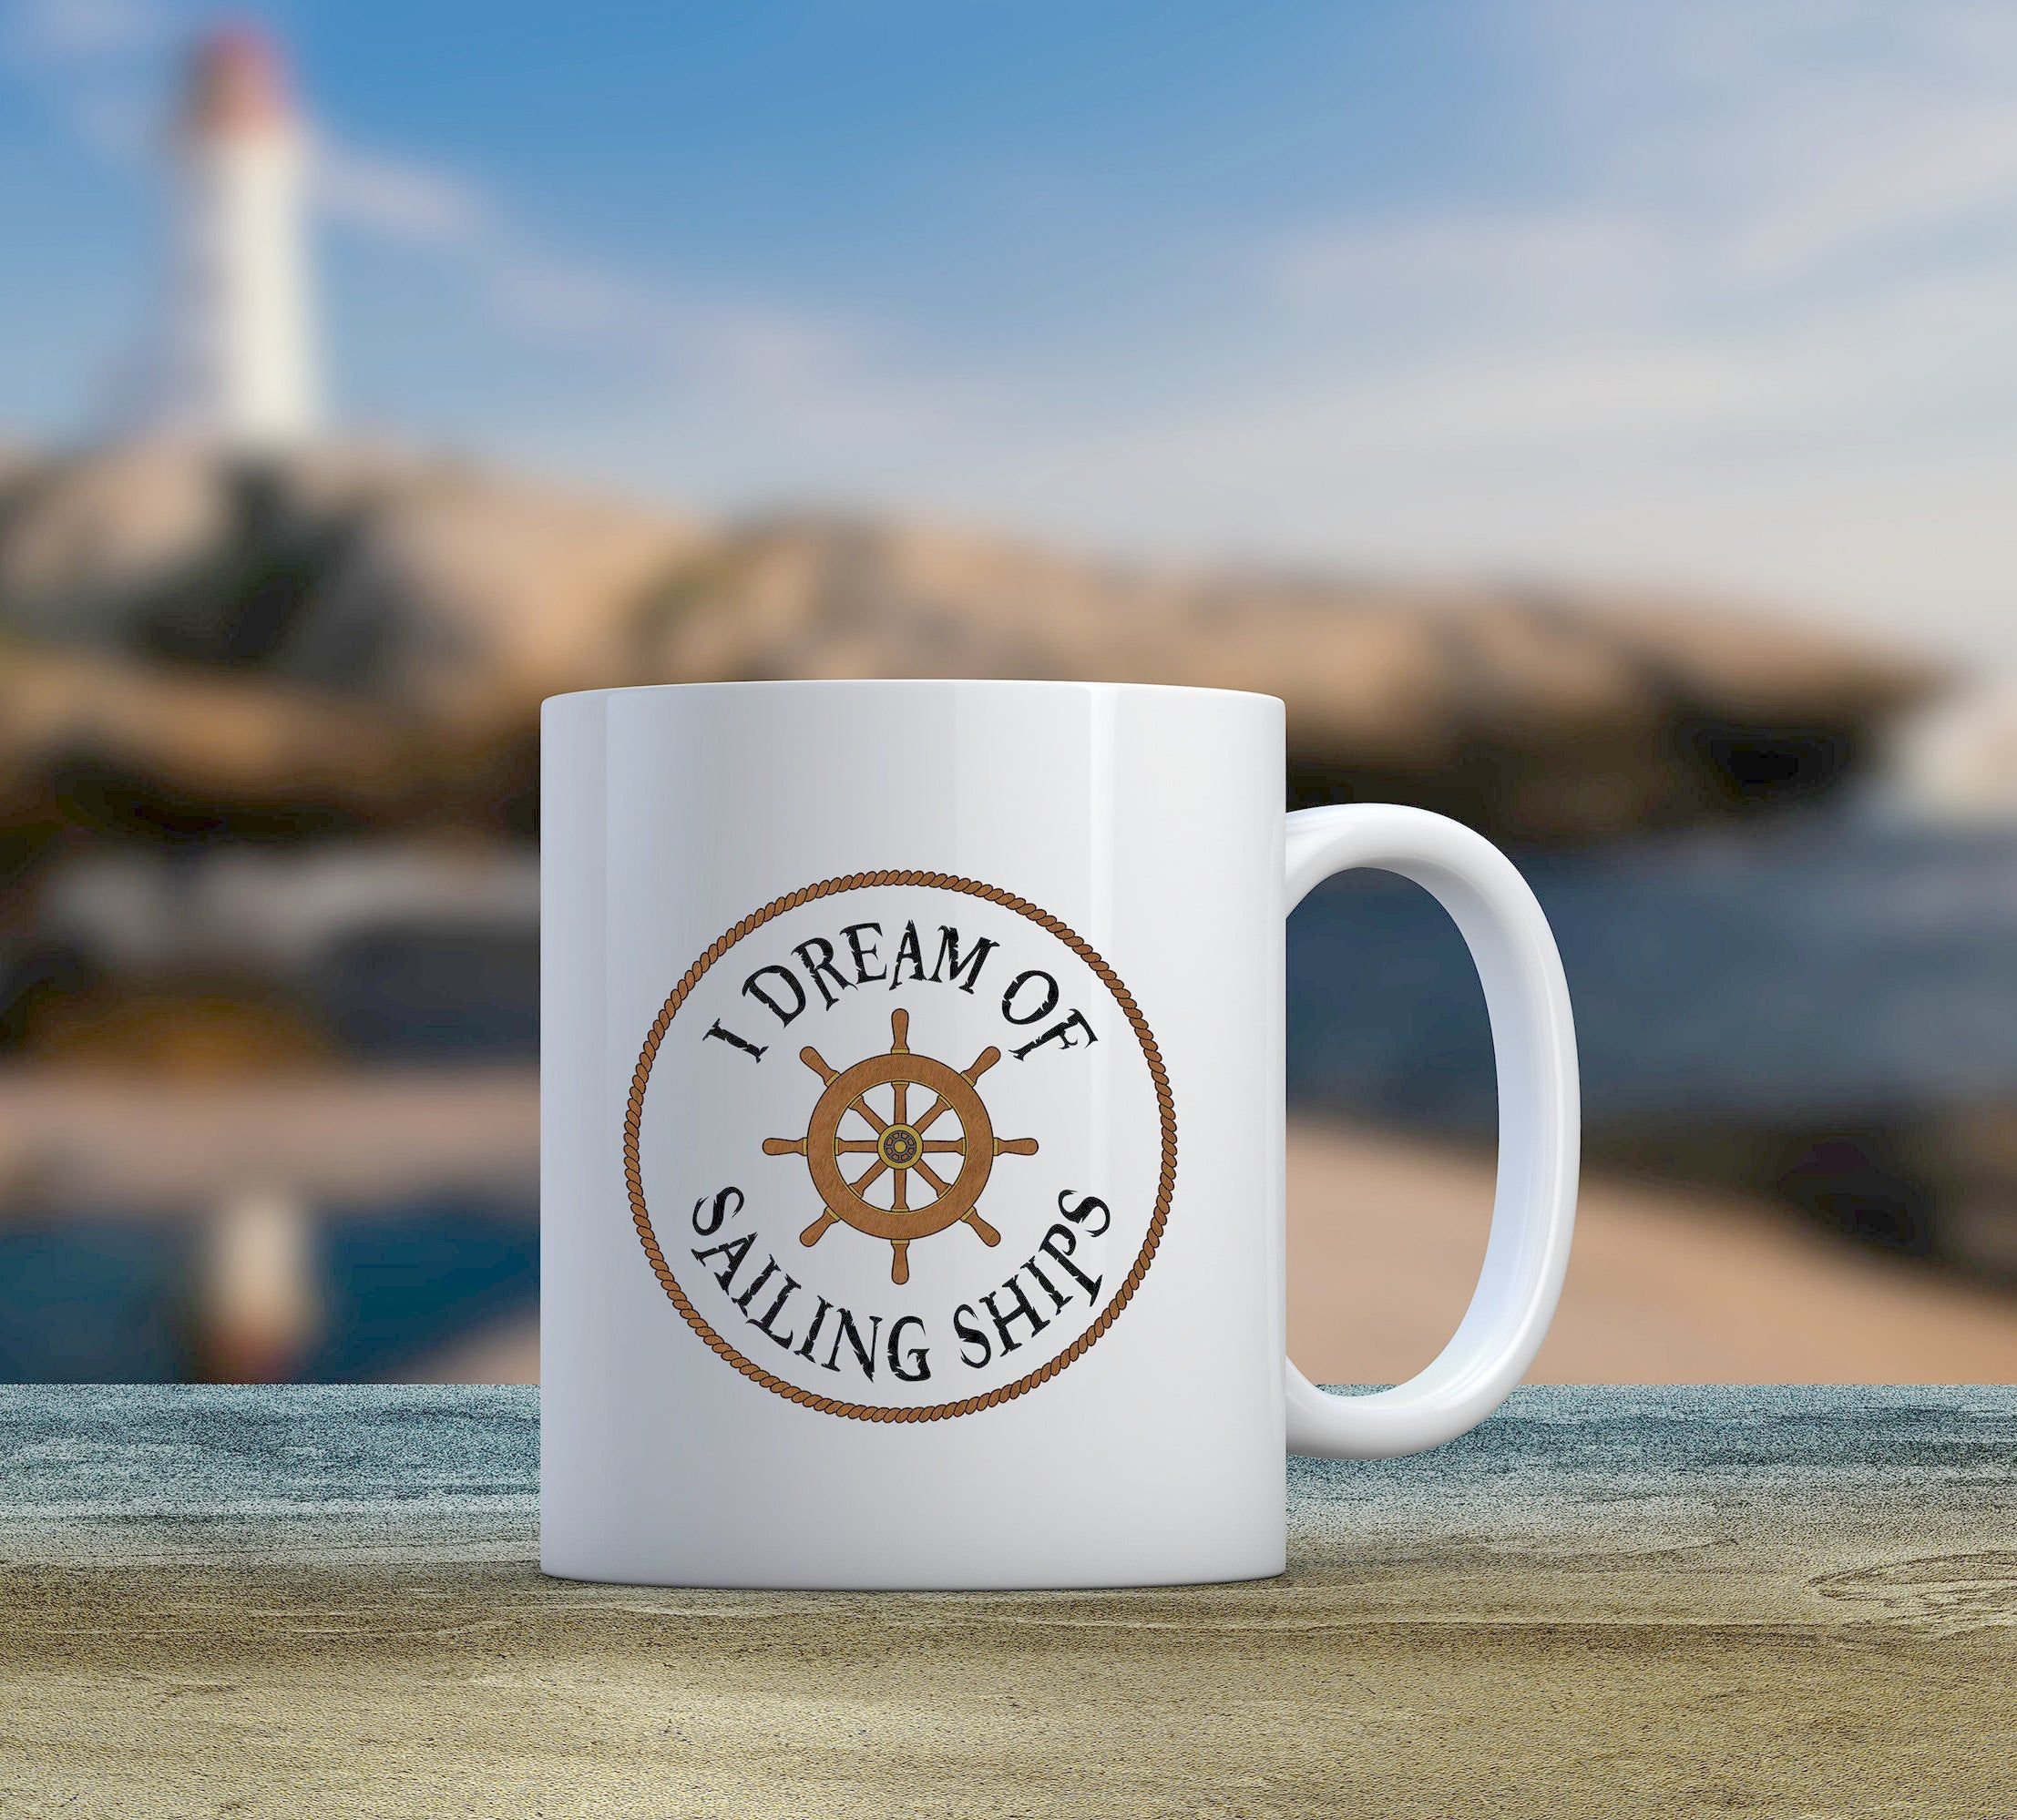 Sailing Coffee Mug I Dream Of Sailing Ships Coffee Cup Nautical Decor Gift Sailor S Gift Great For Home Or Office In 2020 Gifts For Sailors Nautical Decor Decor Gifts